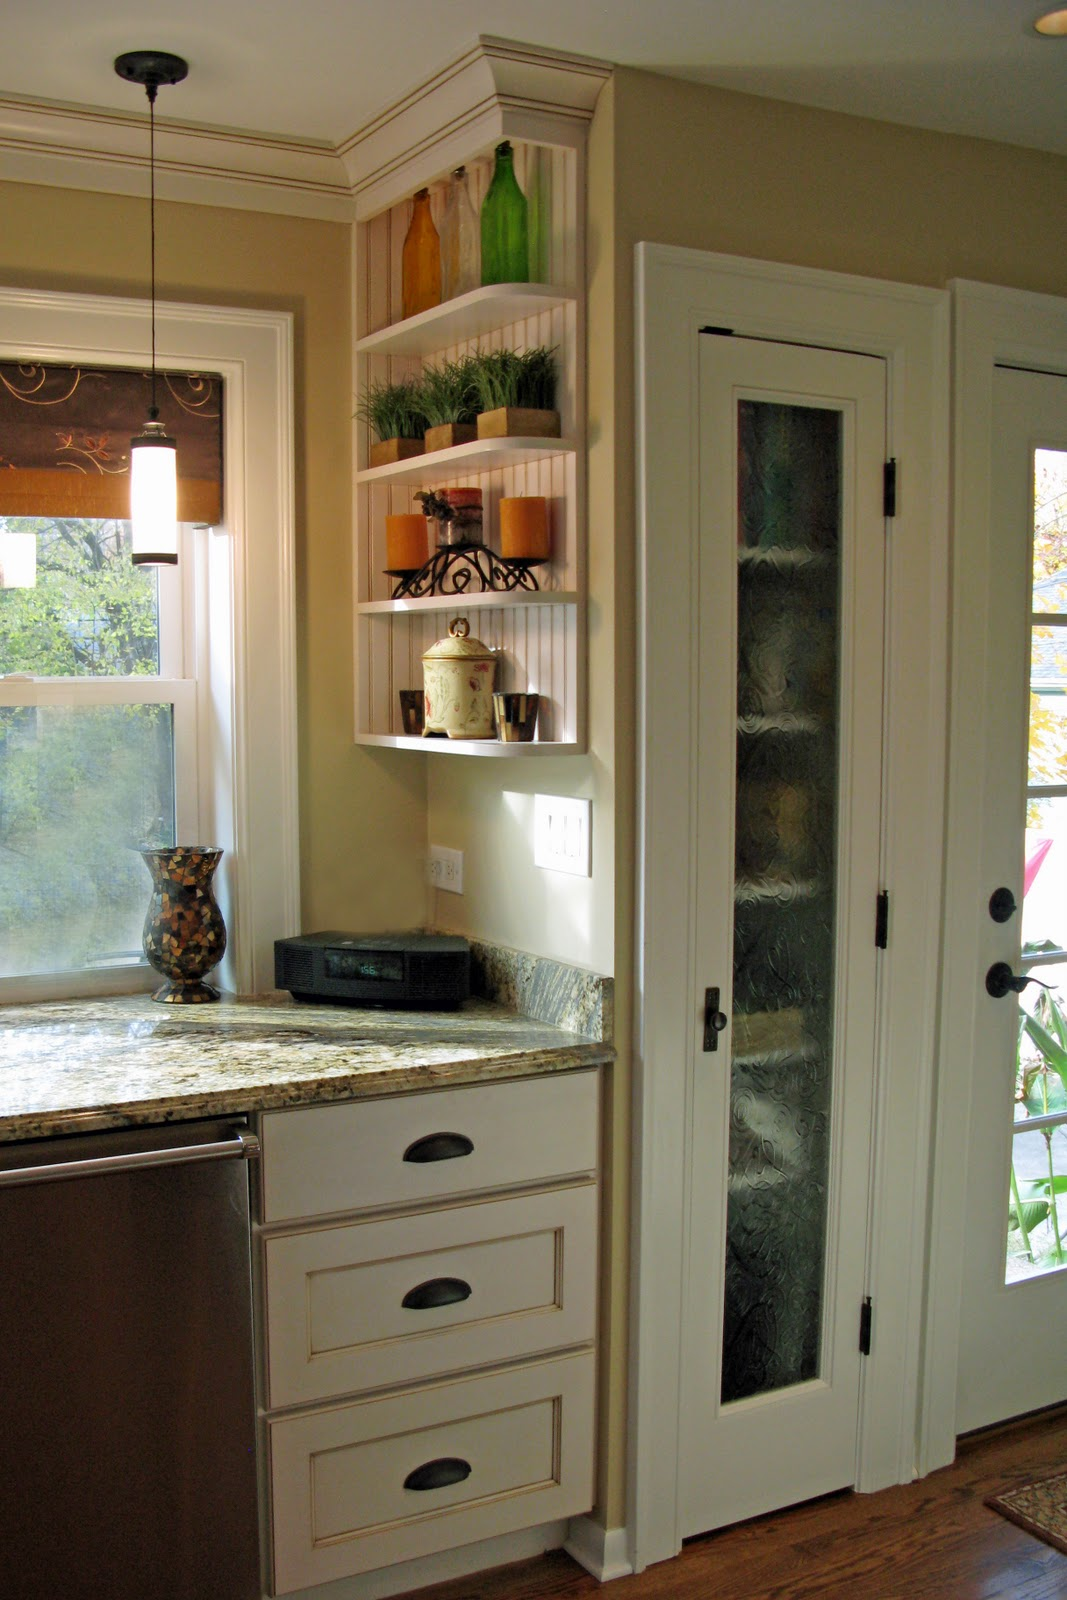 Just Grand Charming Kitchen Before And After